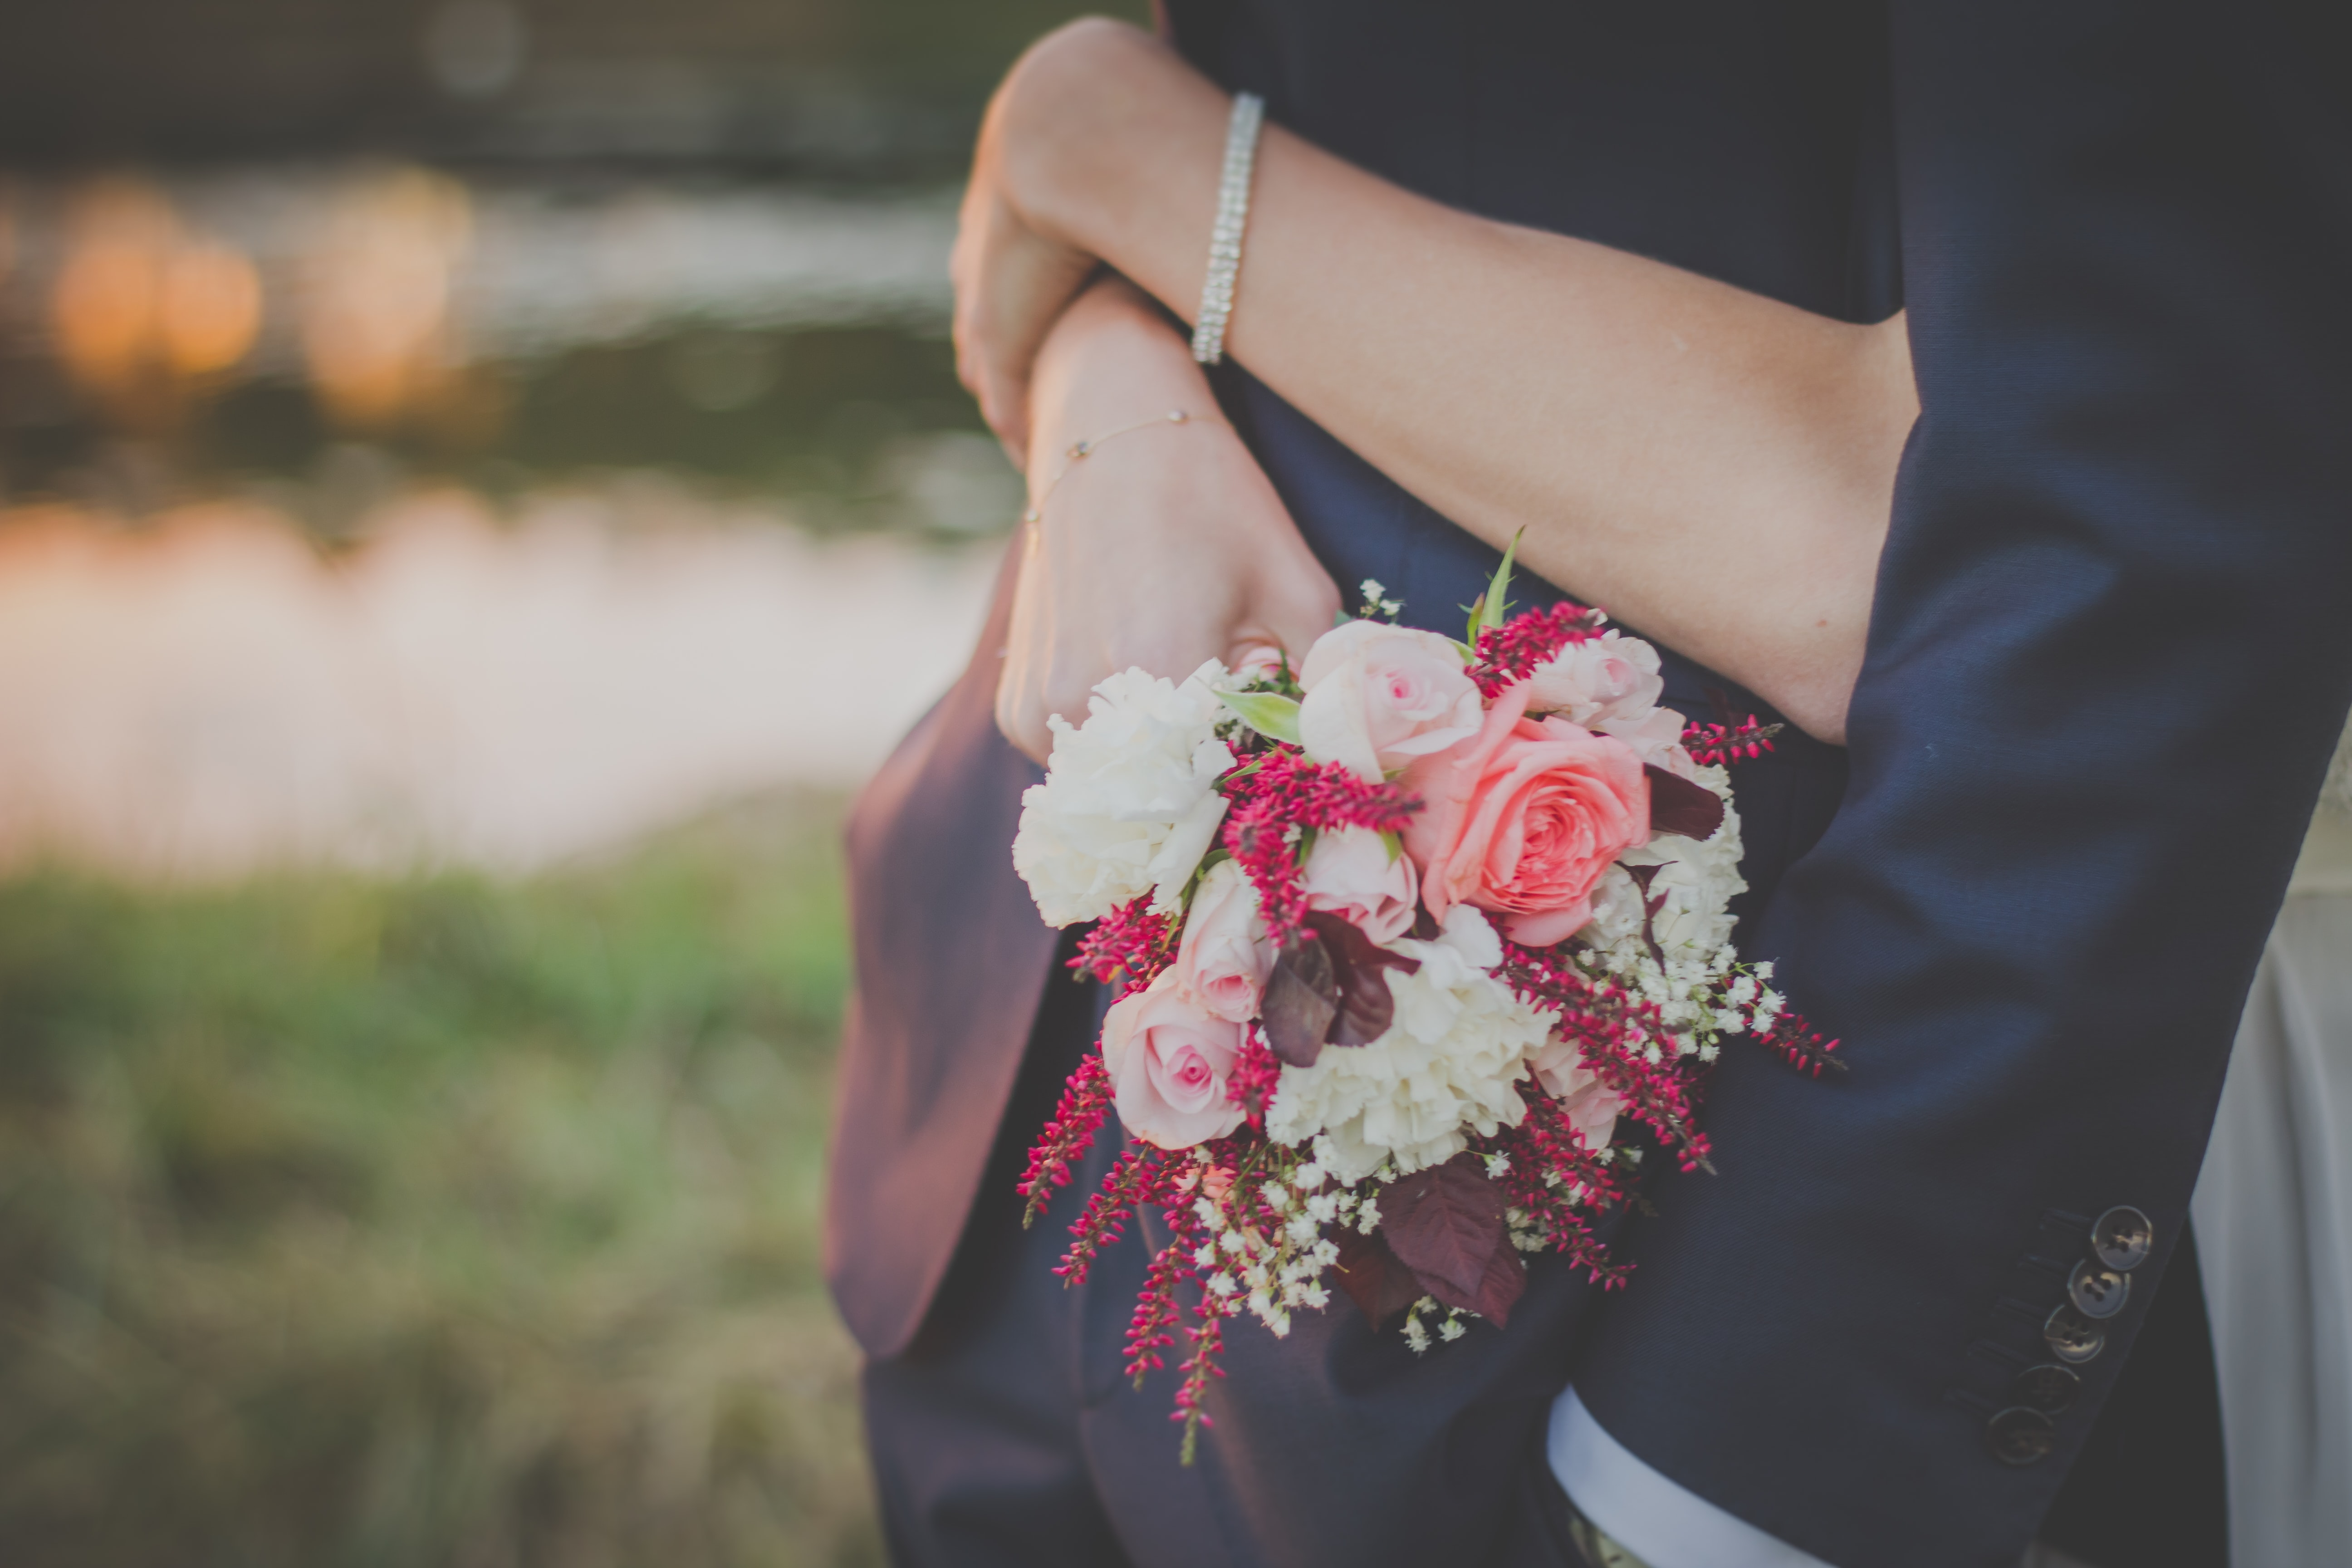 Bride holds a wedding bouquet of roses while wrapping arms around her groom